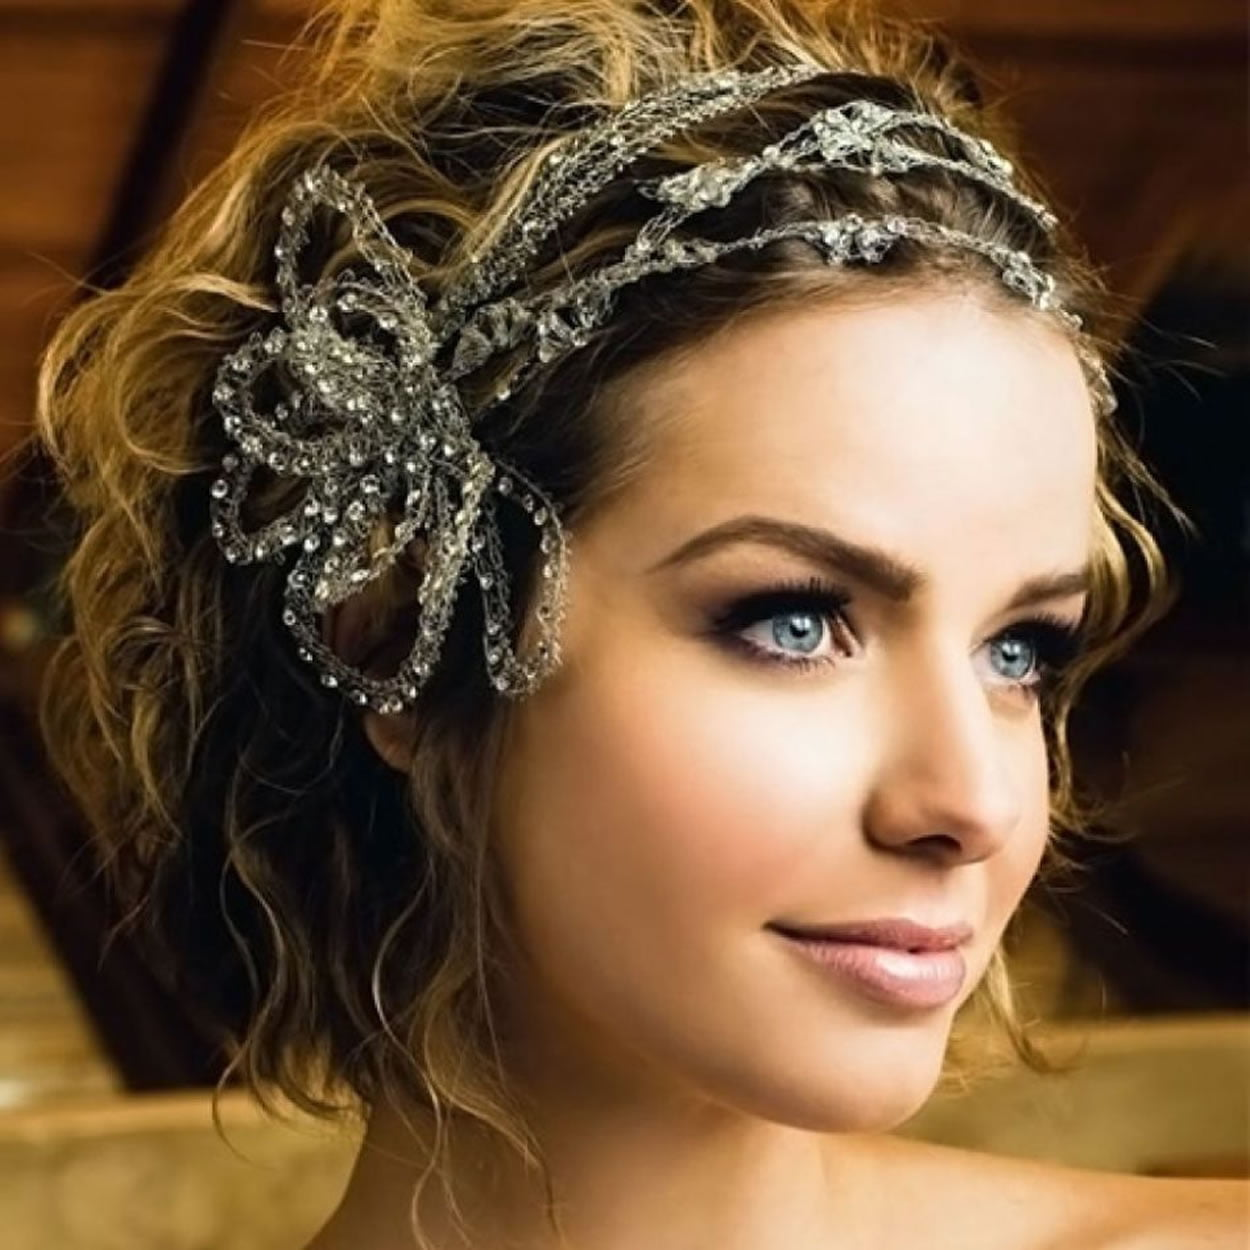 2018 wedding hairstyles and make up guide for short hair page 3 hairstyles. Black Bedroom Furniture Sets. Home Design Ideas